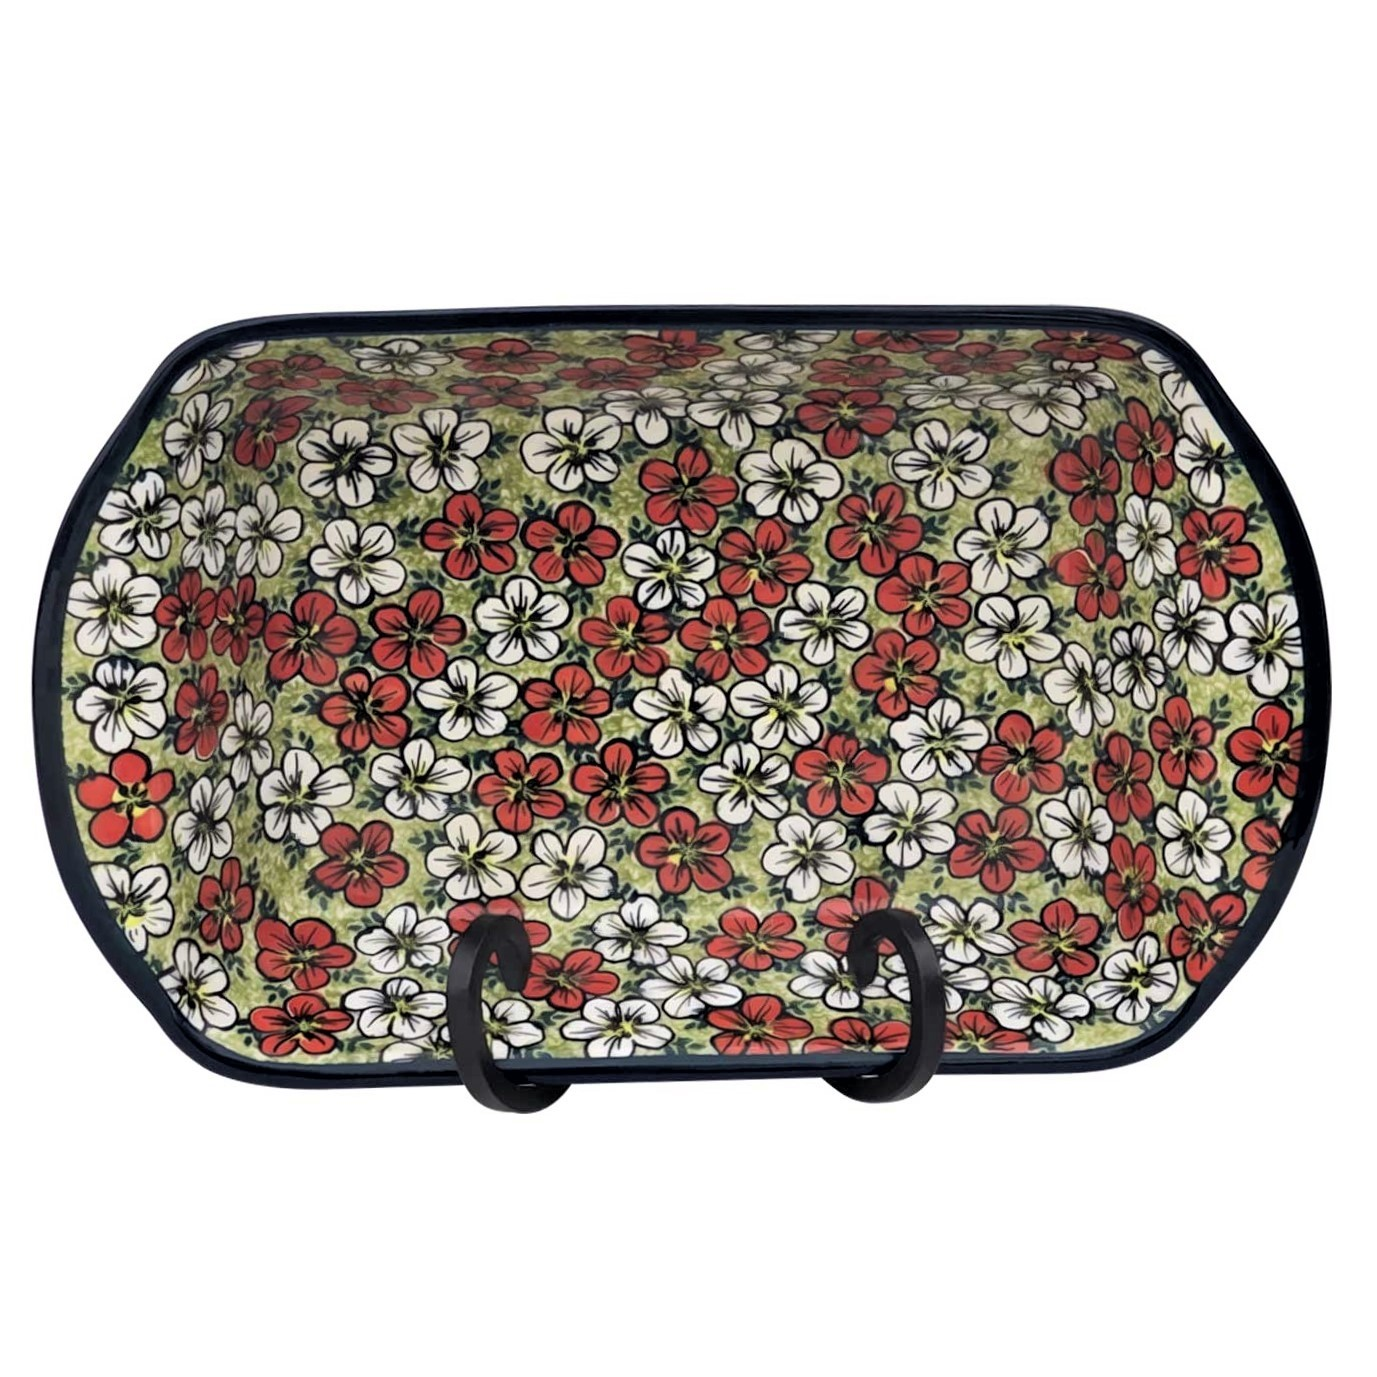 Pottery Avenue 14-inch Stoneware Handled Rectangular Serving-Baker - 1145-331AR Red Bacopa